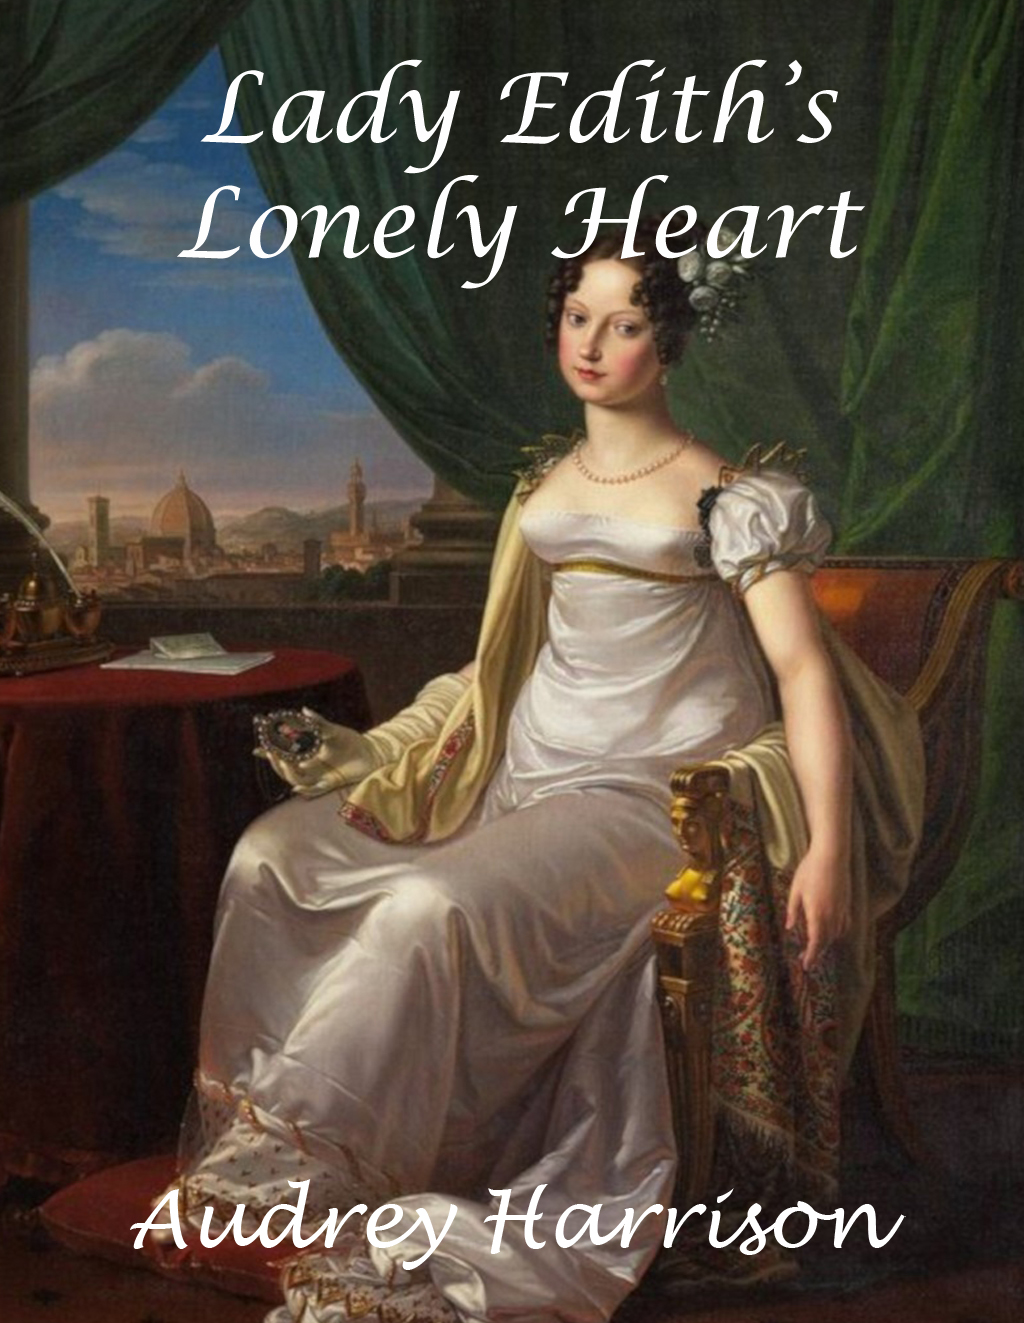 The book cover shows a woman in regency dress seated by a window